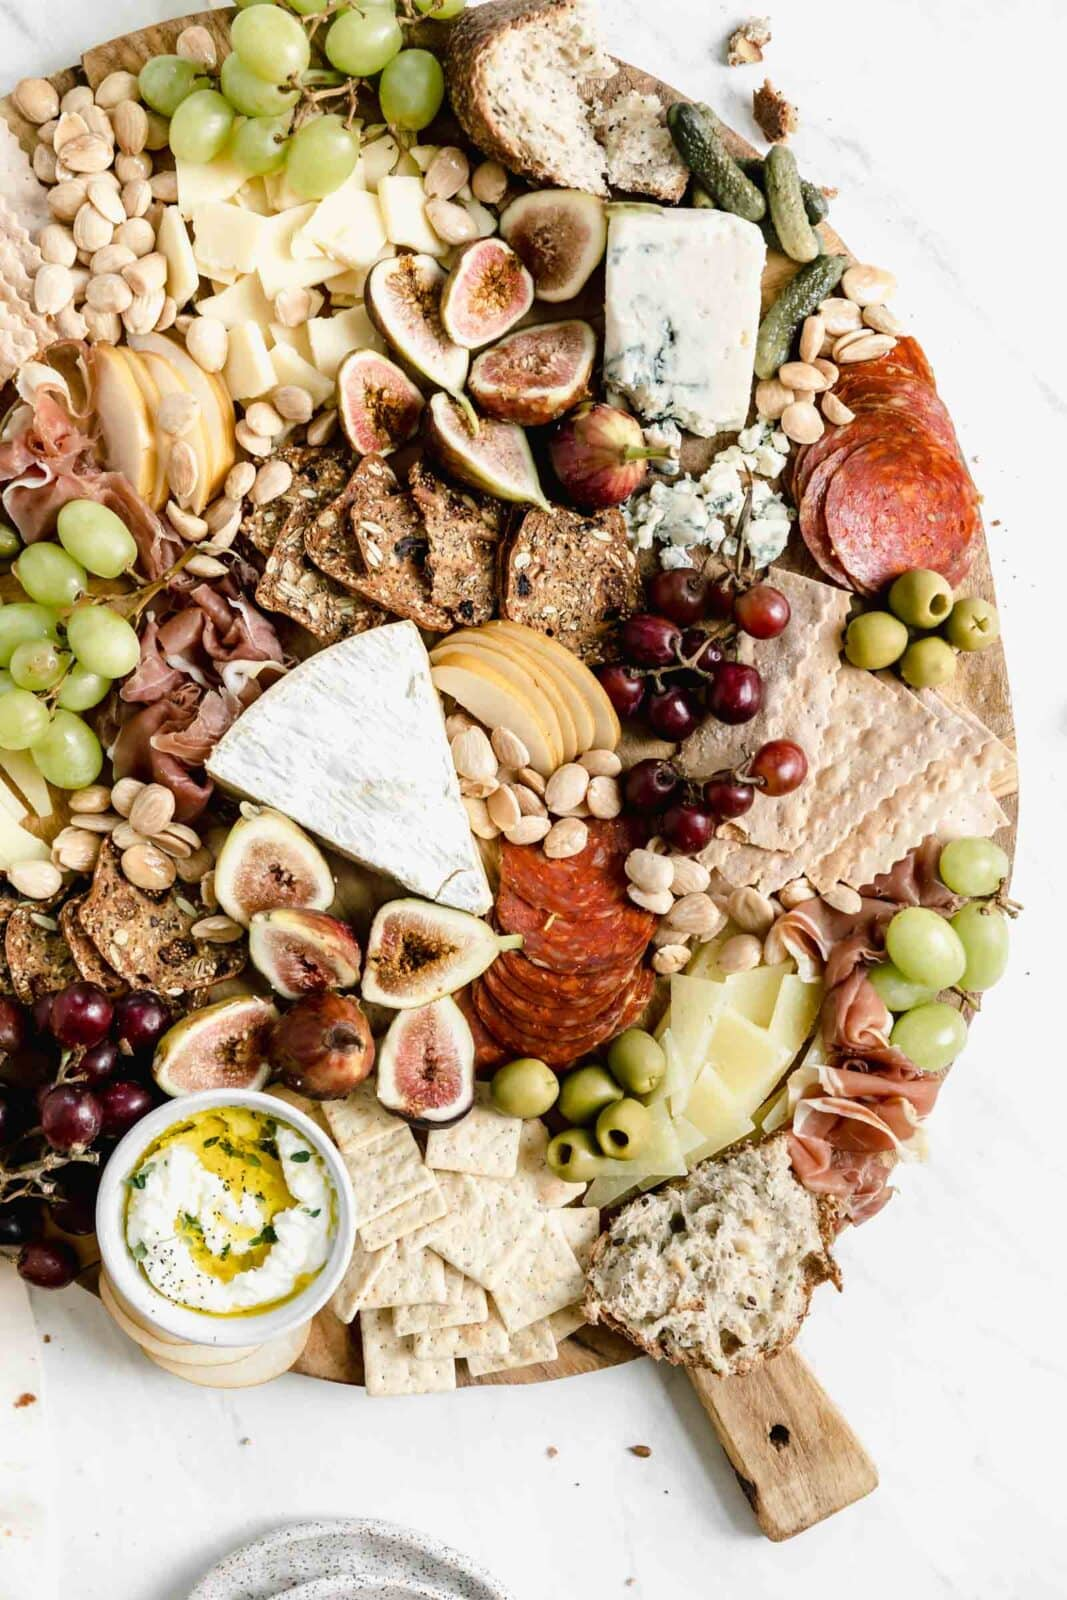 instagrammable cheeseboard loaded with cheese, meats, almonds, olives, and crackers